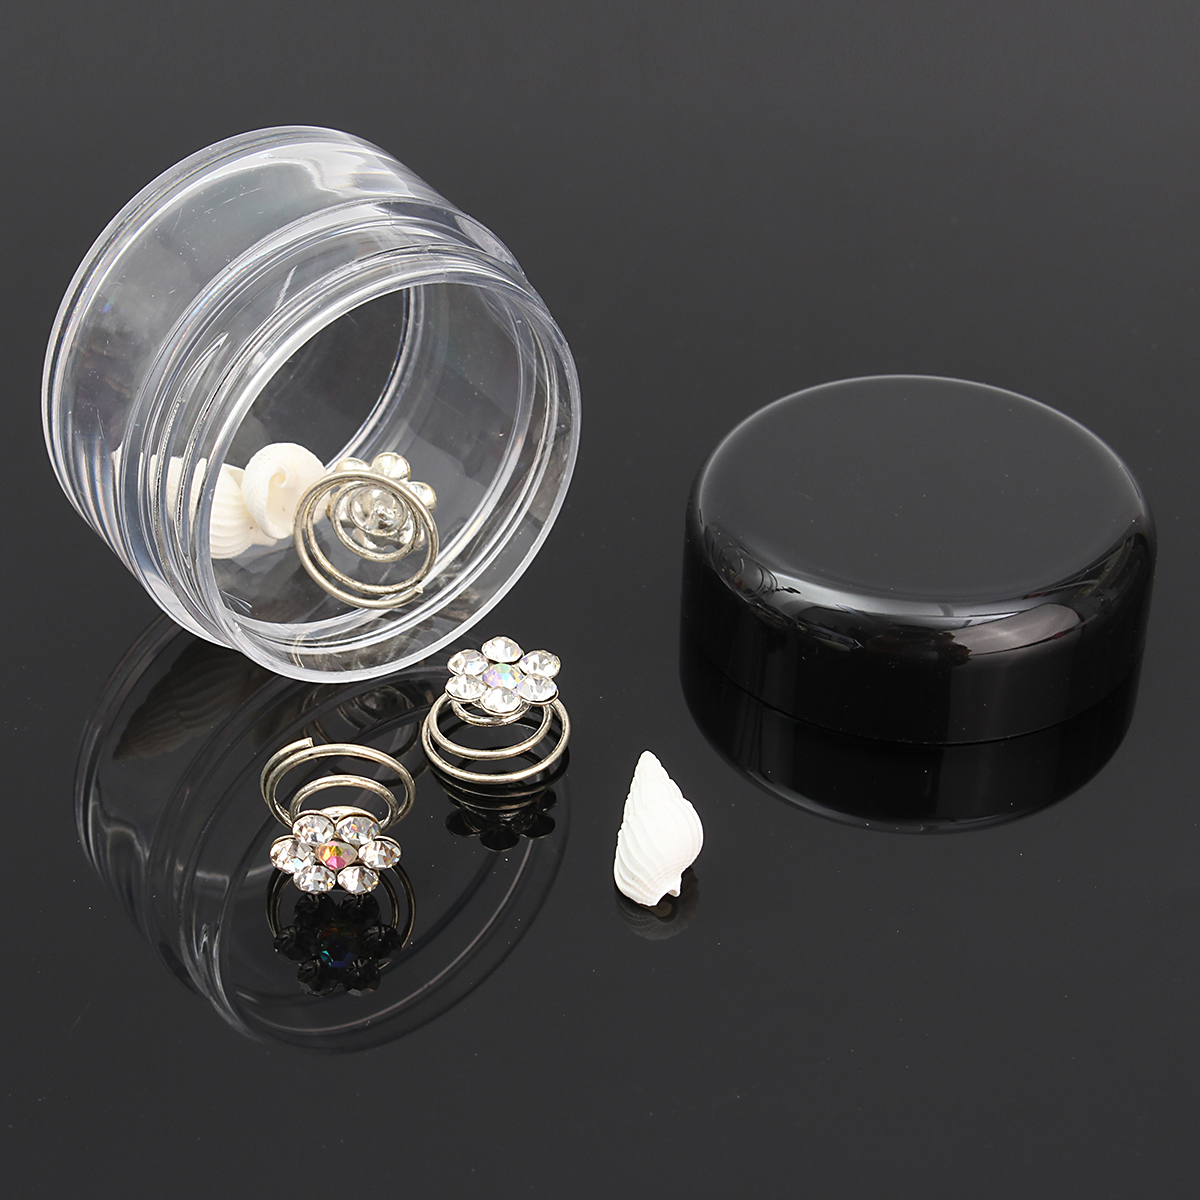 LuckyFine 10pcs Transparent Empty Eye Cream Jar Cosmetic Plastic Bottle Travel Makeup Container